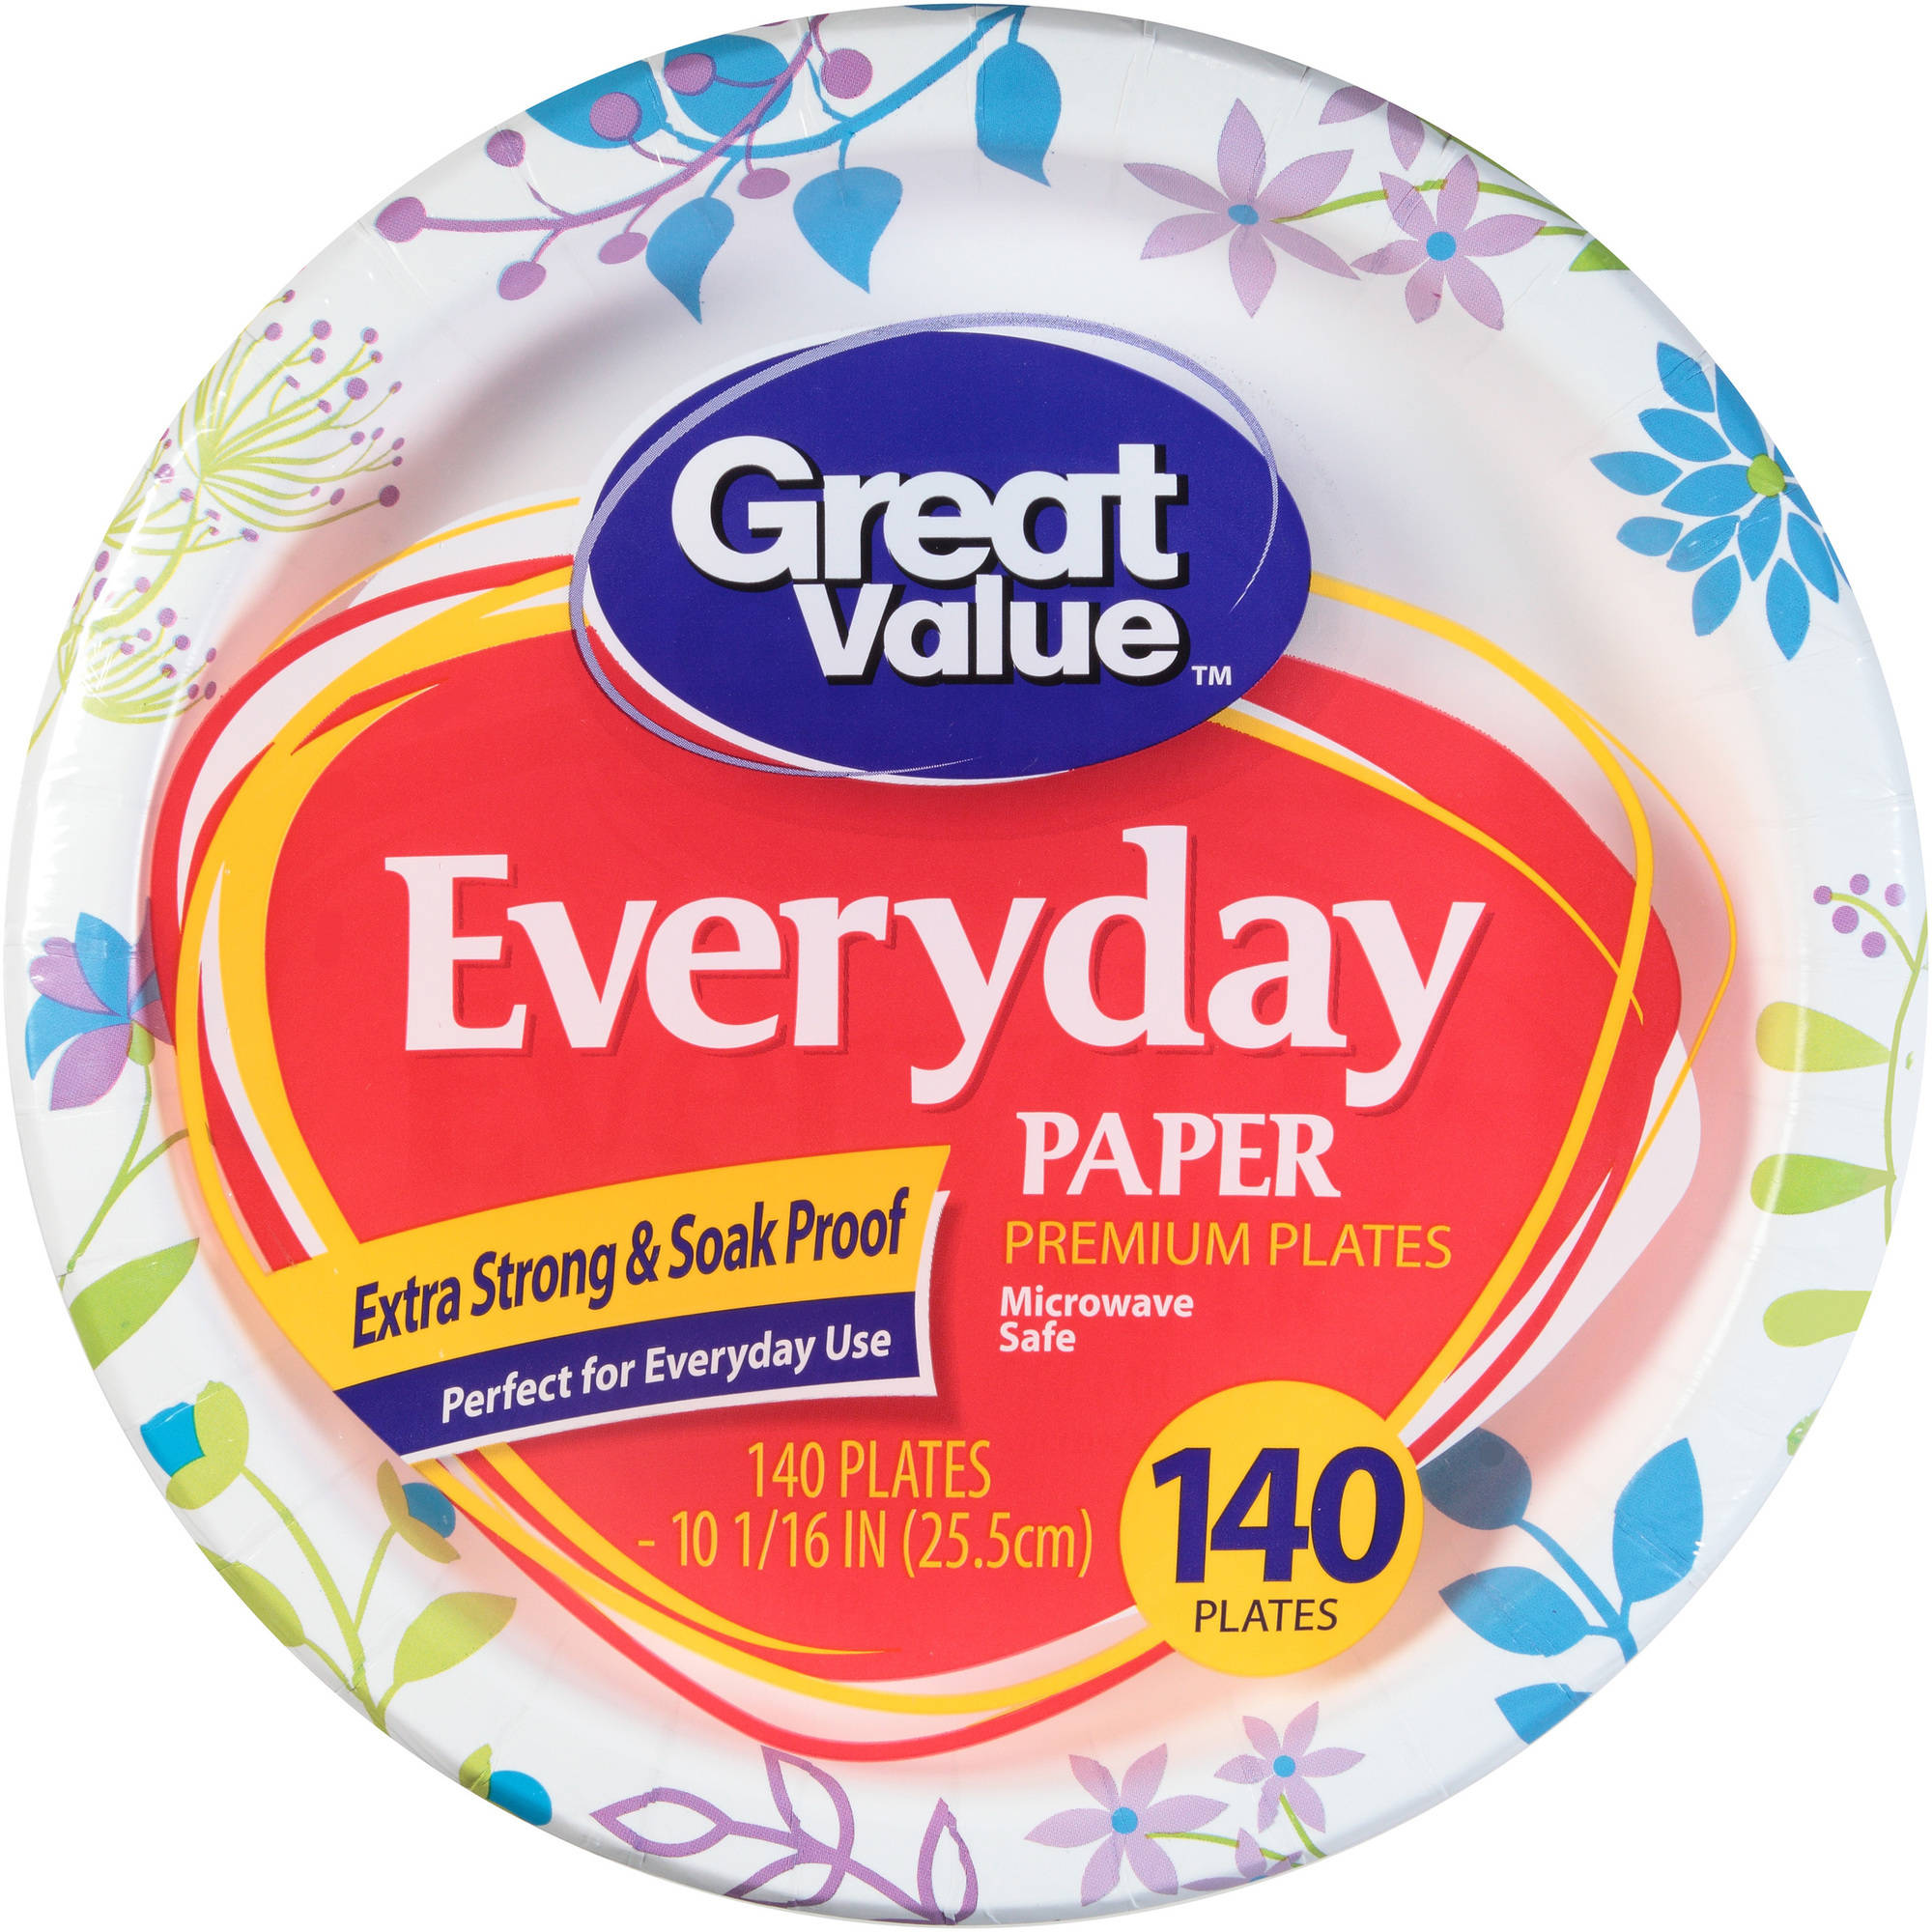 Great Value Everyday Premium Paper Plates 10 1/16  140 Count  sc 1 st  Walmart : heavyweight paper plates - pezcame.com